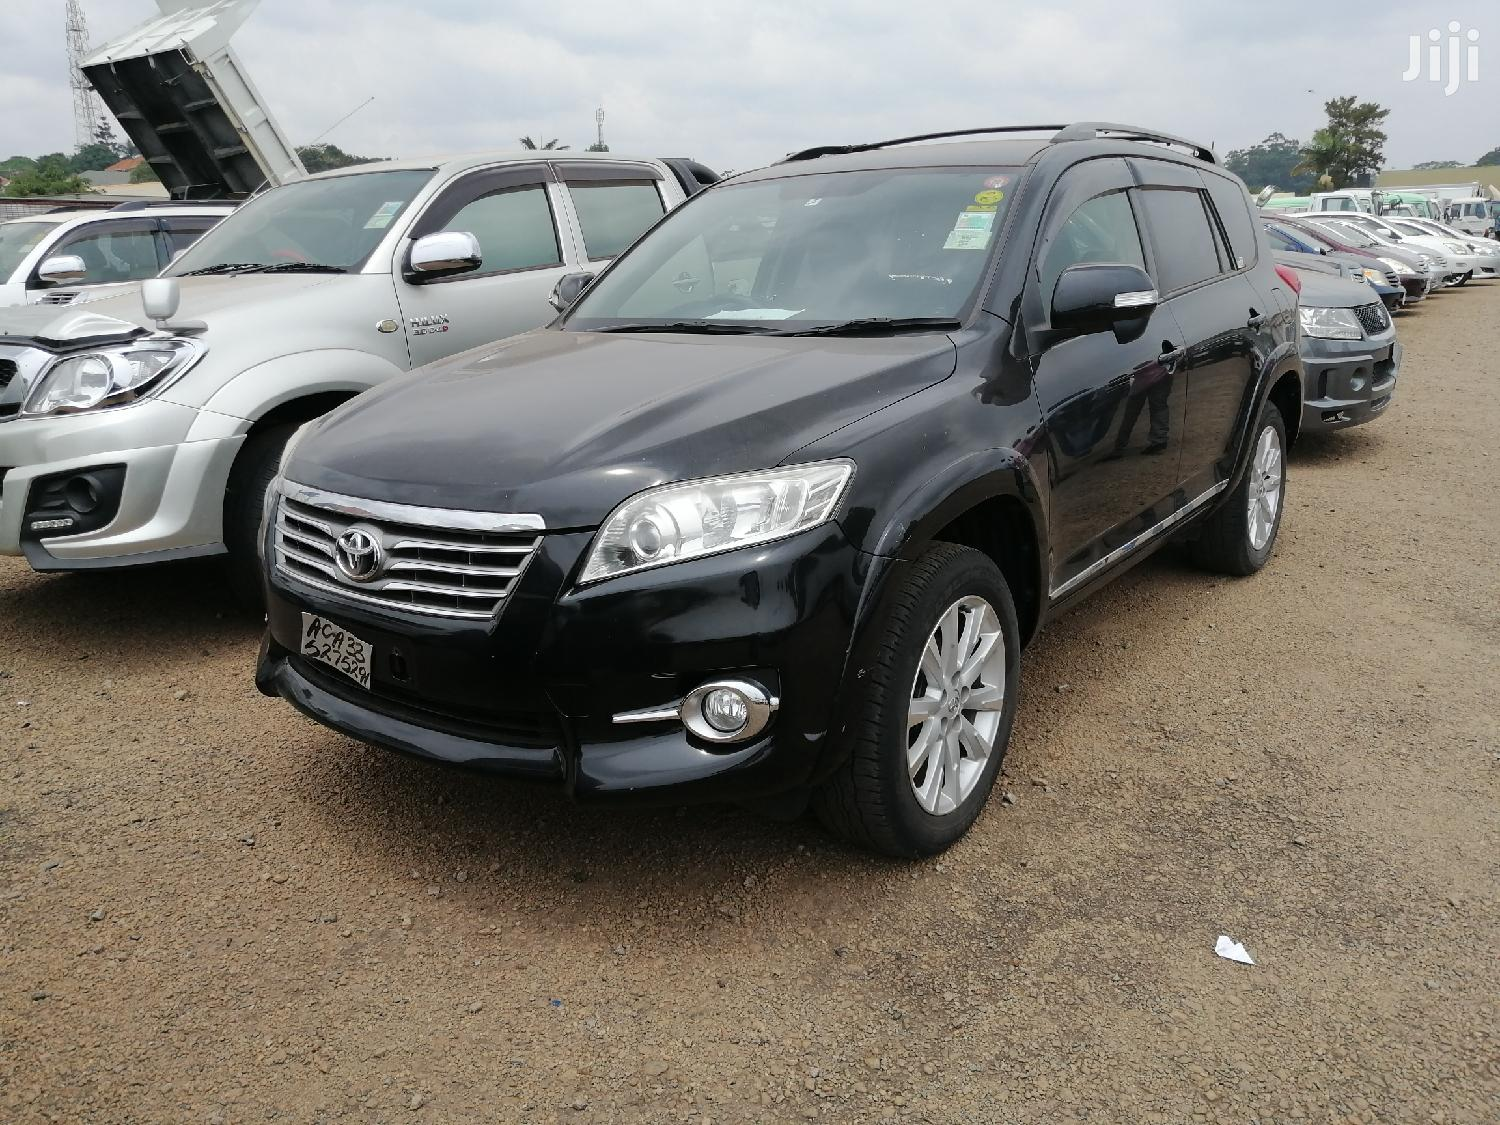 Archive: Toyota Vanguard 2012 Black